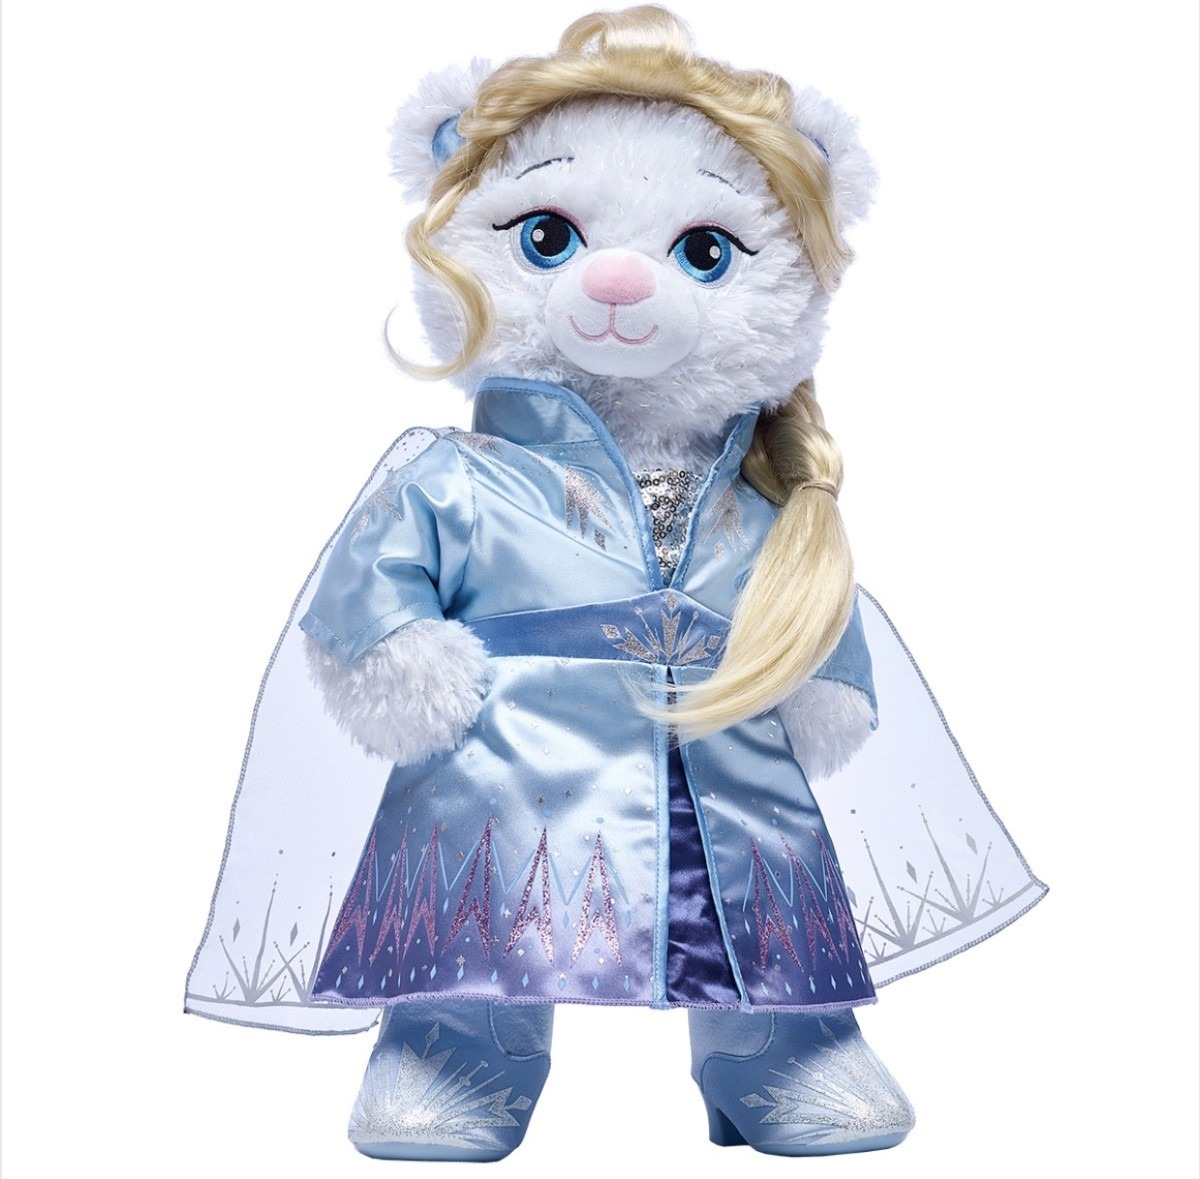 New Frozen 2 Collection at Build-A-Bear Workshop 1